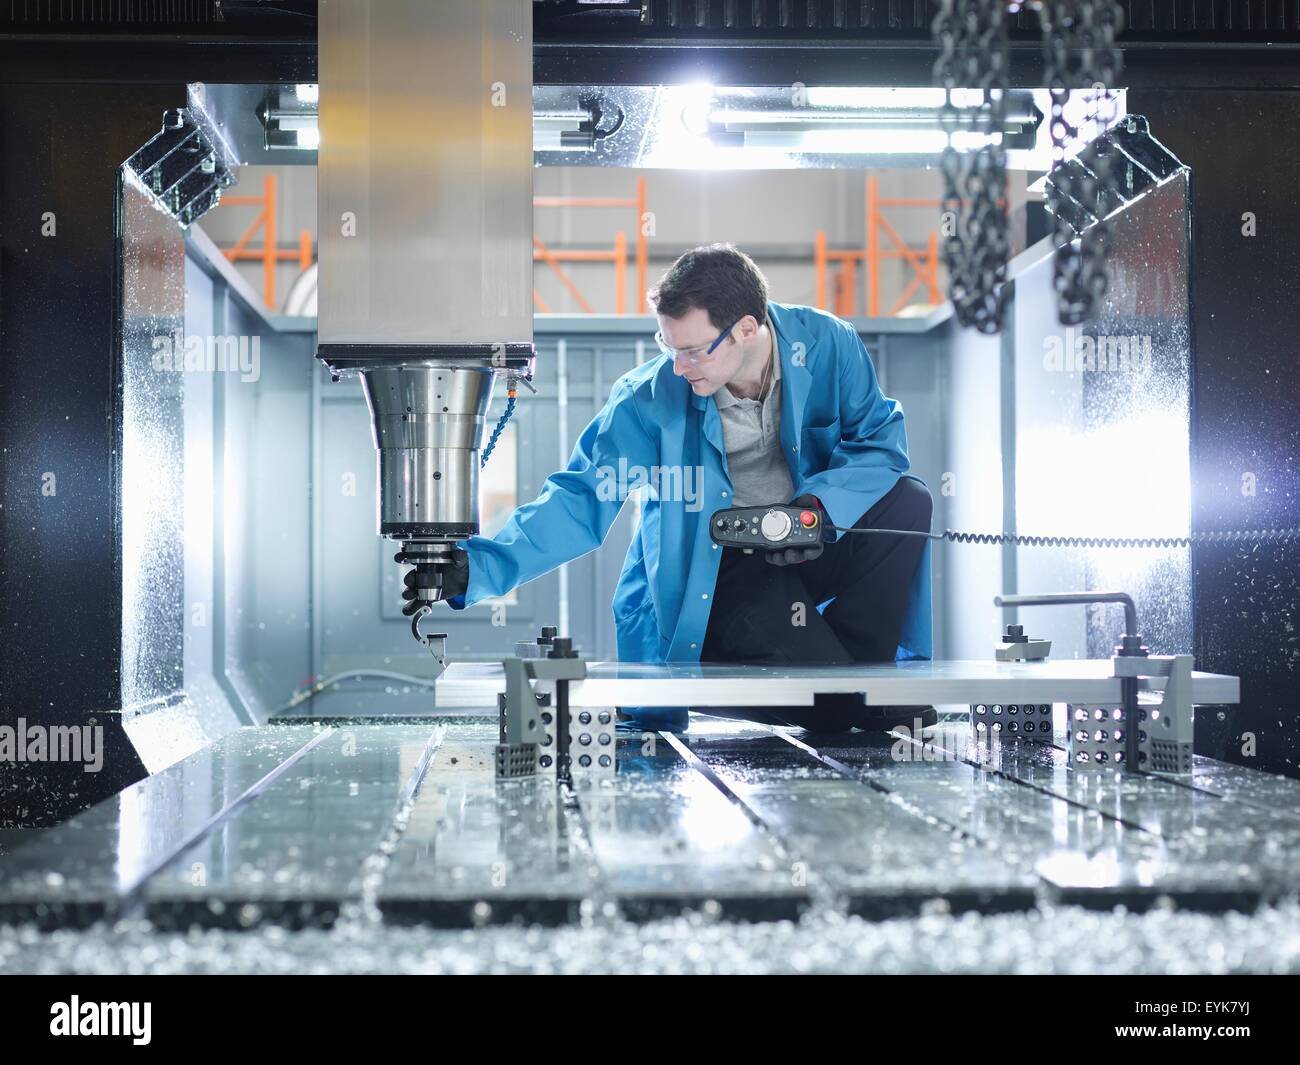 Worker in large CNC machine in plastics factory - Stock Image